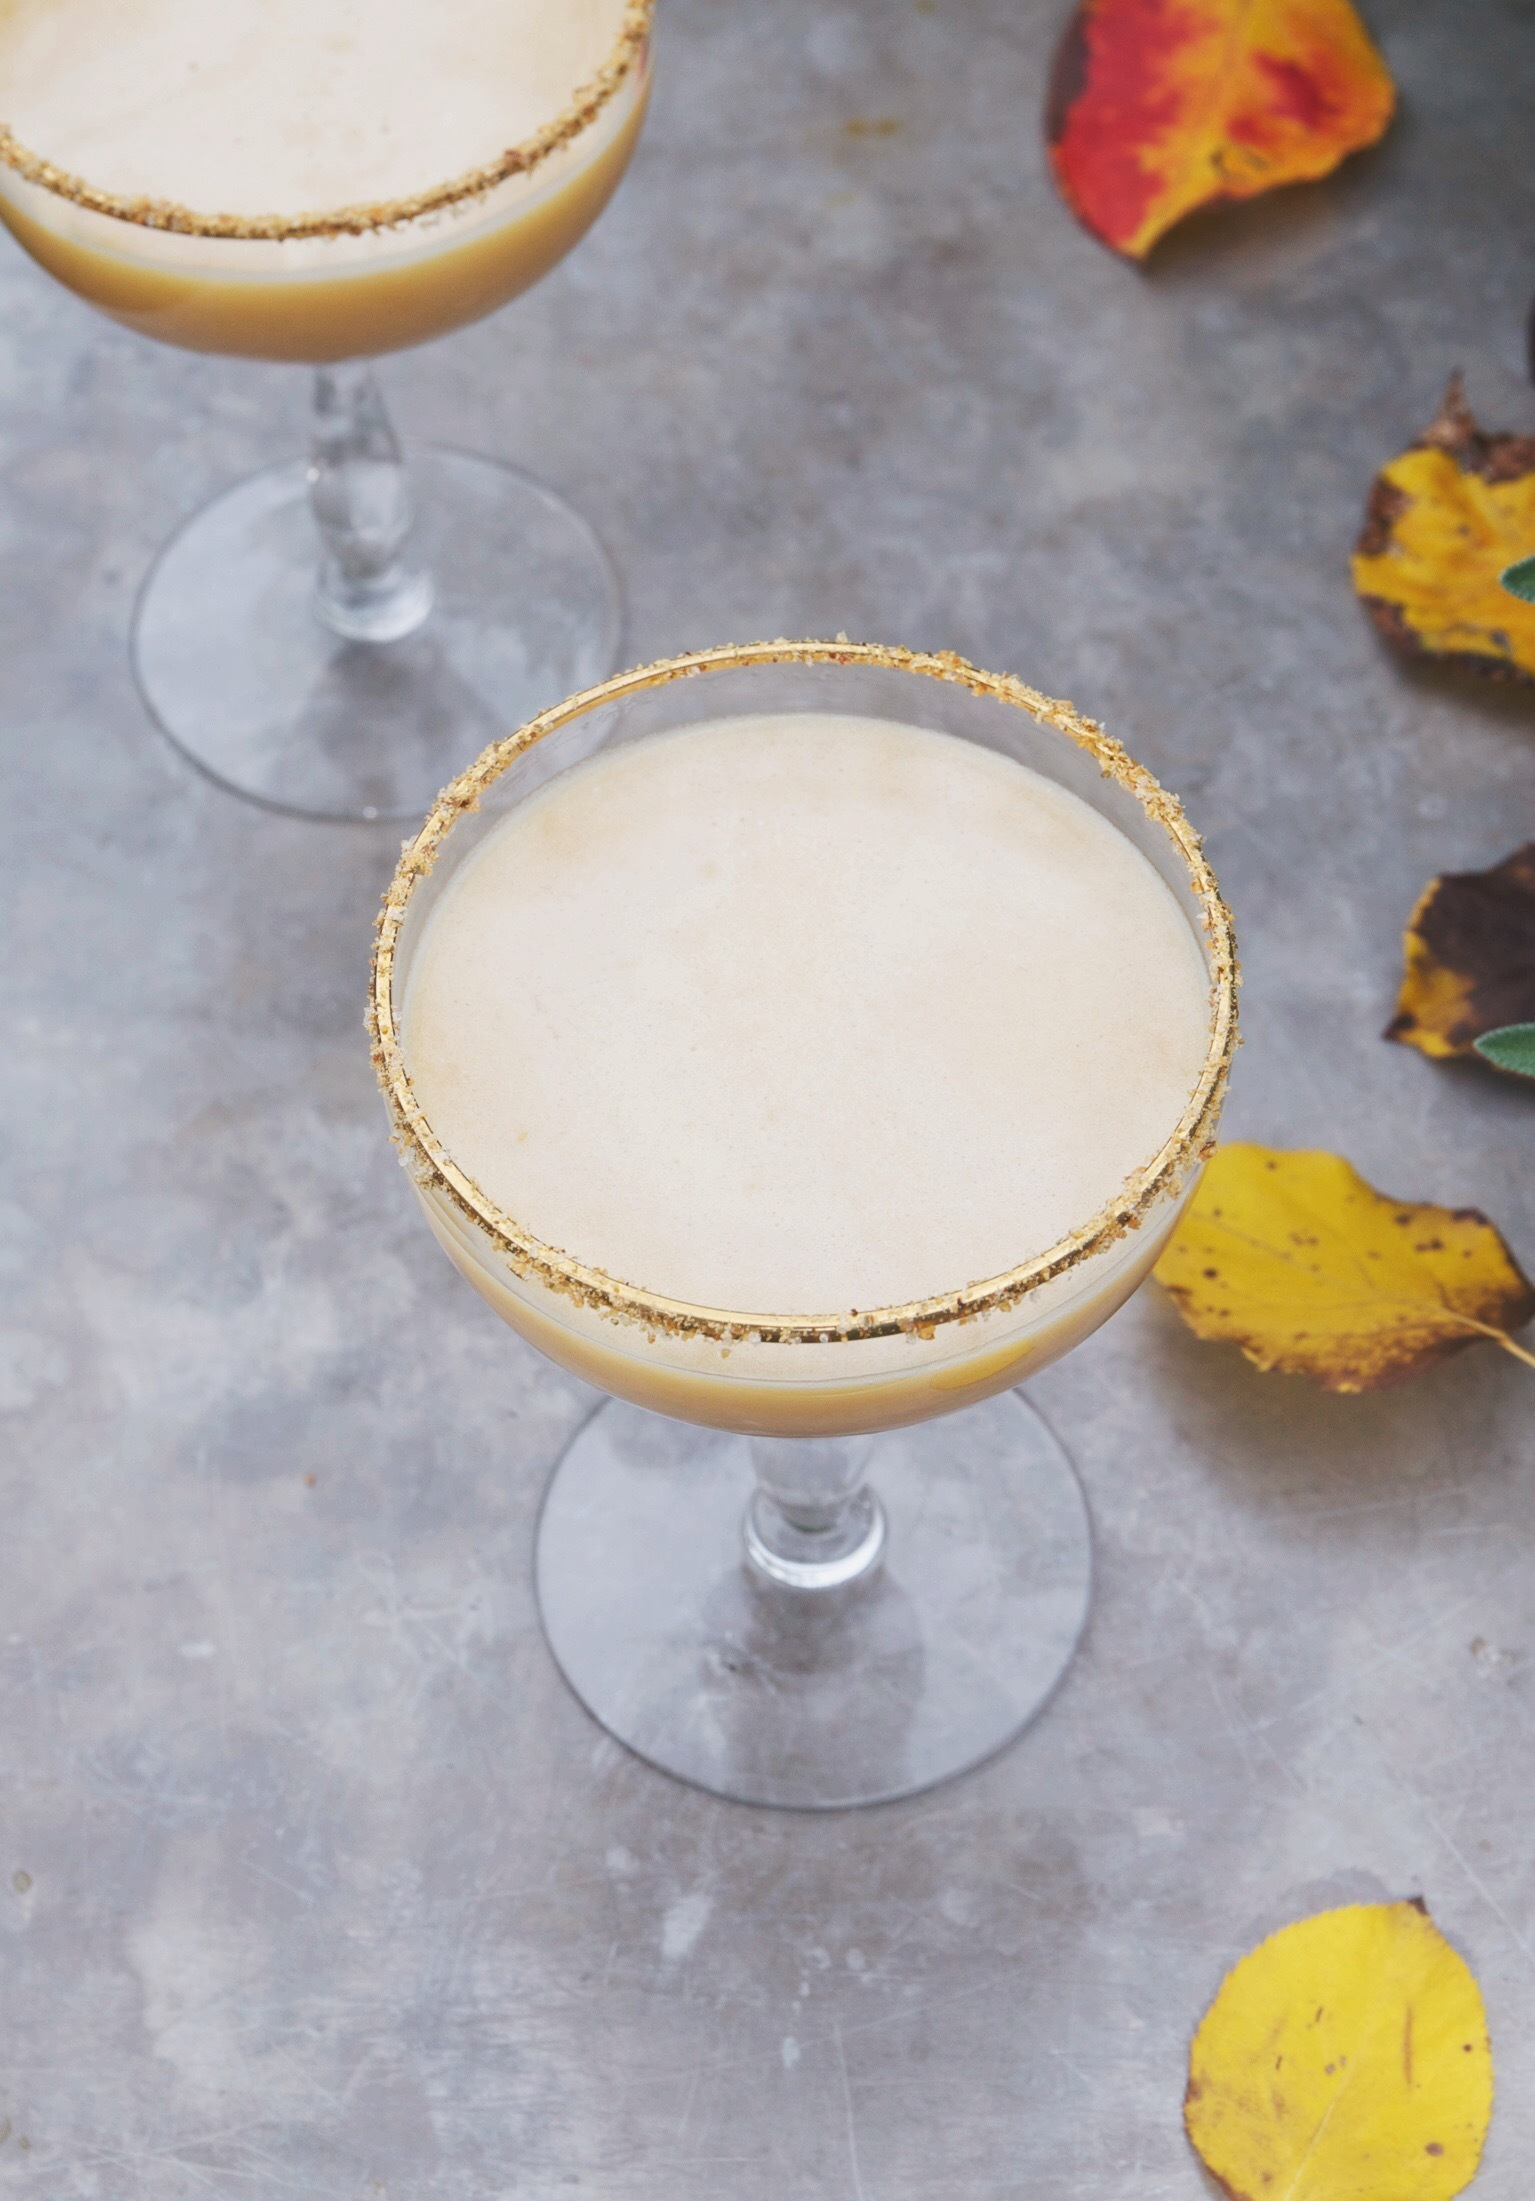 Comment on pumpkin pie martini with coconut cream + homemade pumpkin spice syrup by Jayme Henderson